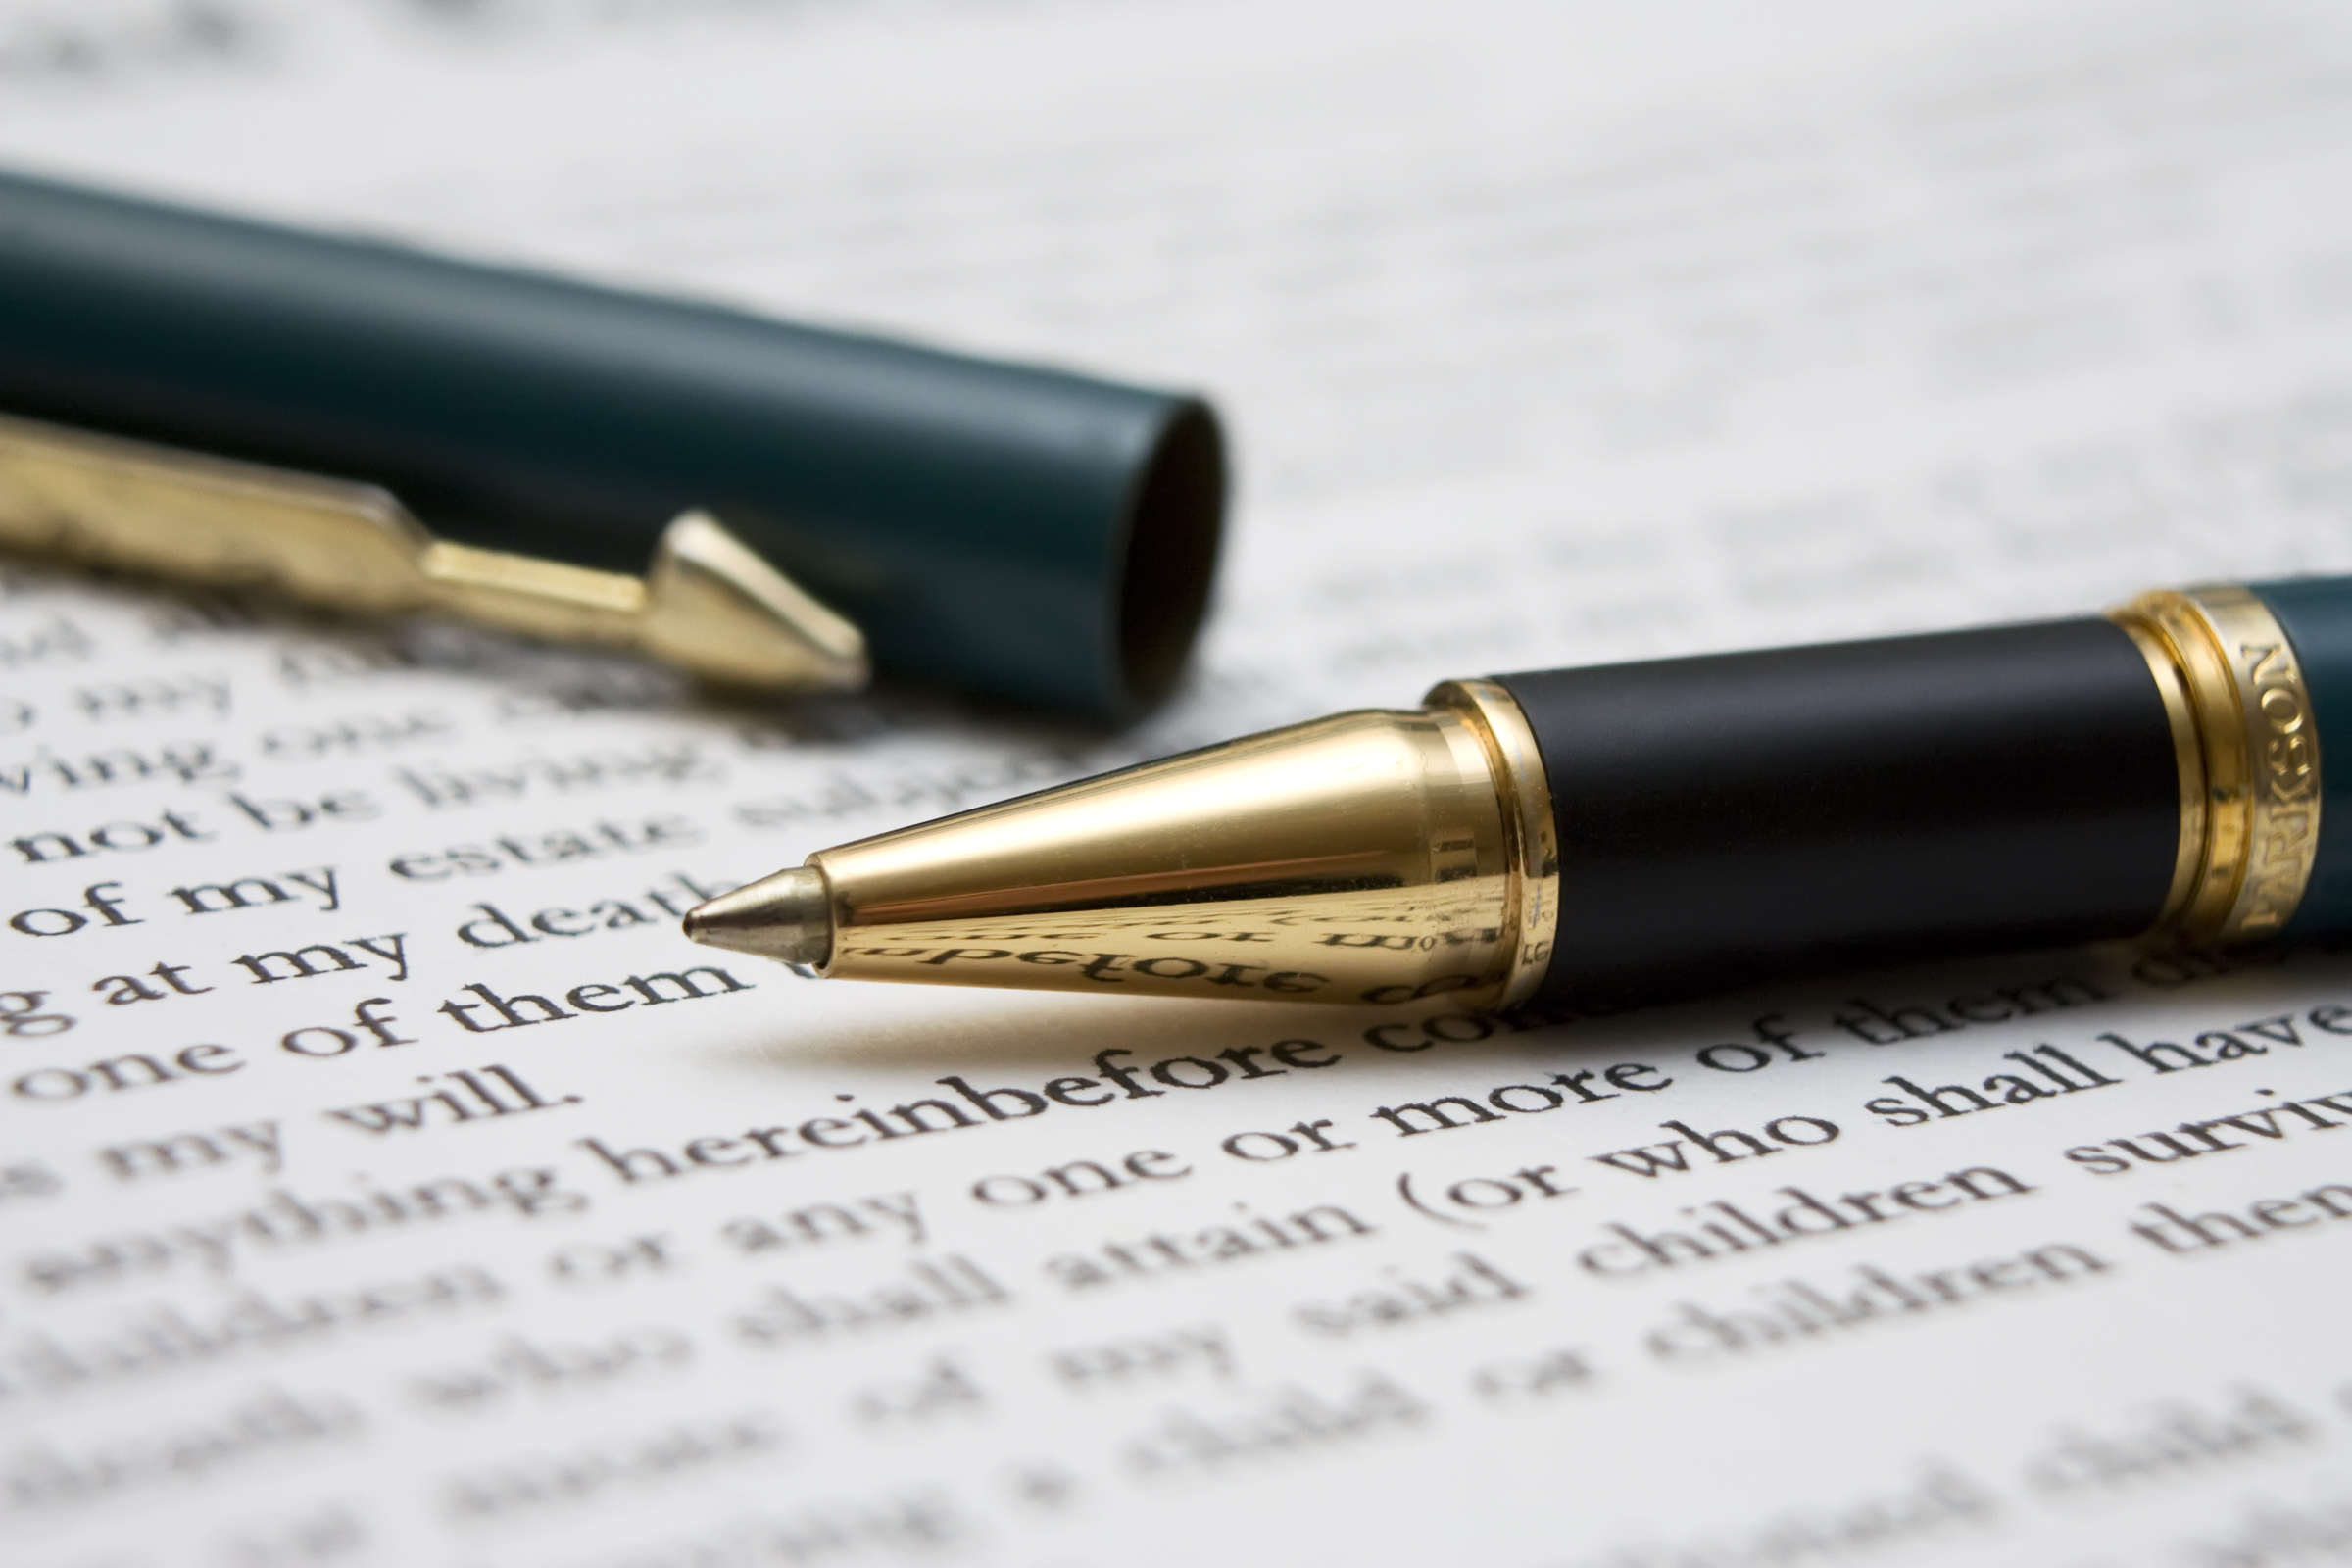 Making sense of non-disclosure and confidentiality agreements